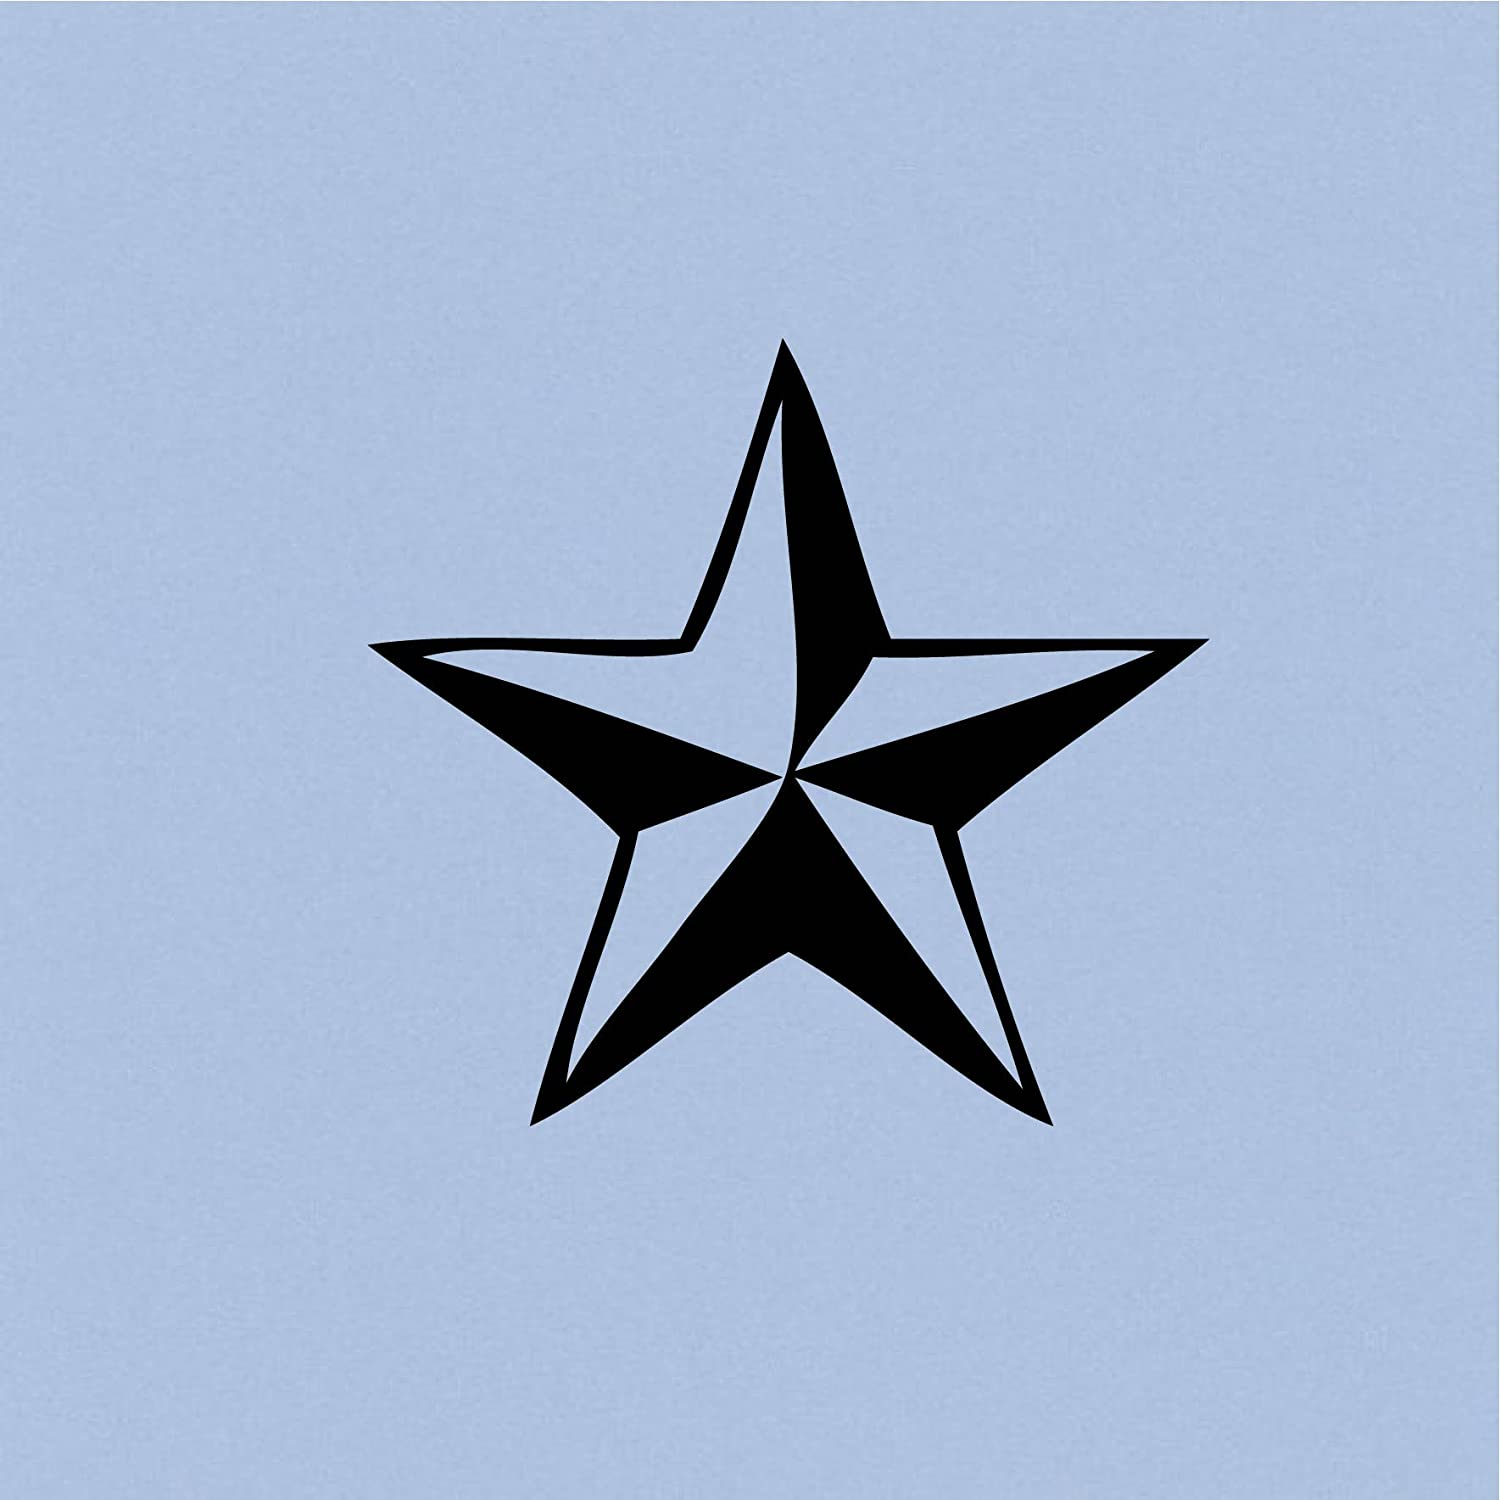 "Nor Cal Star (Black 5"") Vinyl Decal Sticker for Car Automobile Window Wall Laptop Notebook Etc.... Any Smooth Surface Such As Windows Bumpers"